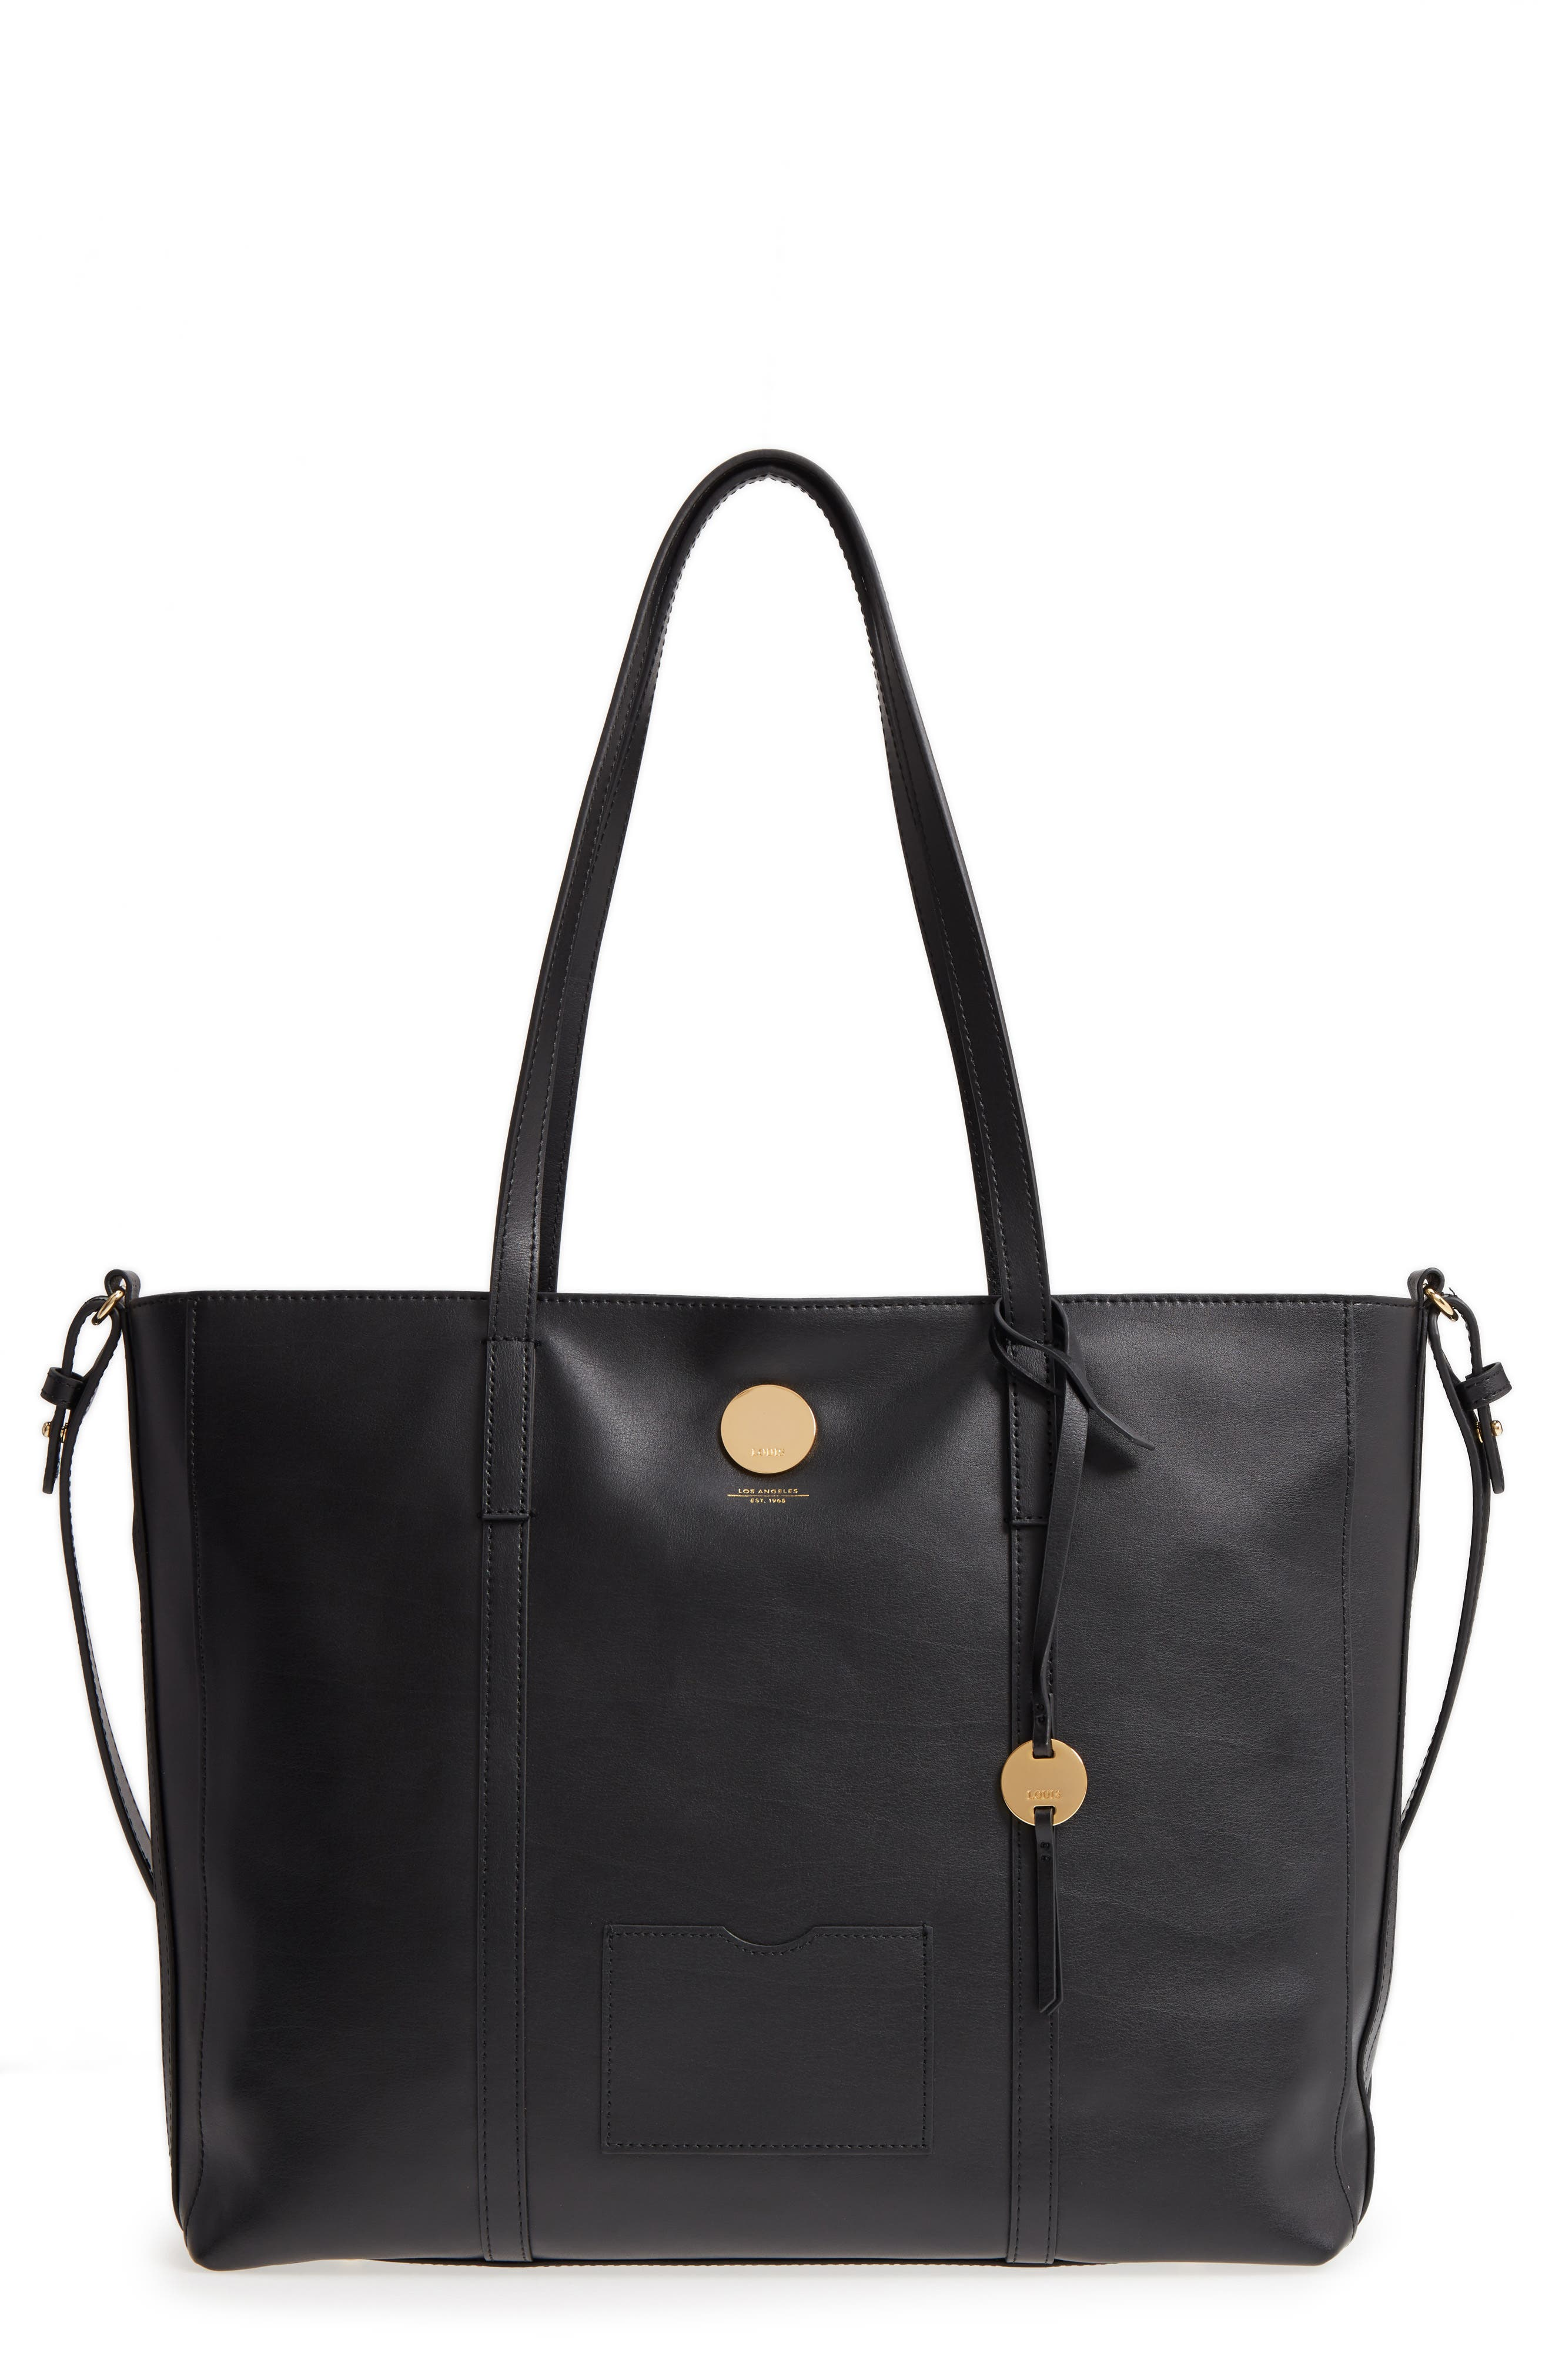 Nelly RFID Medium Leather Tote,                         Main,                         color, BLACK